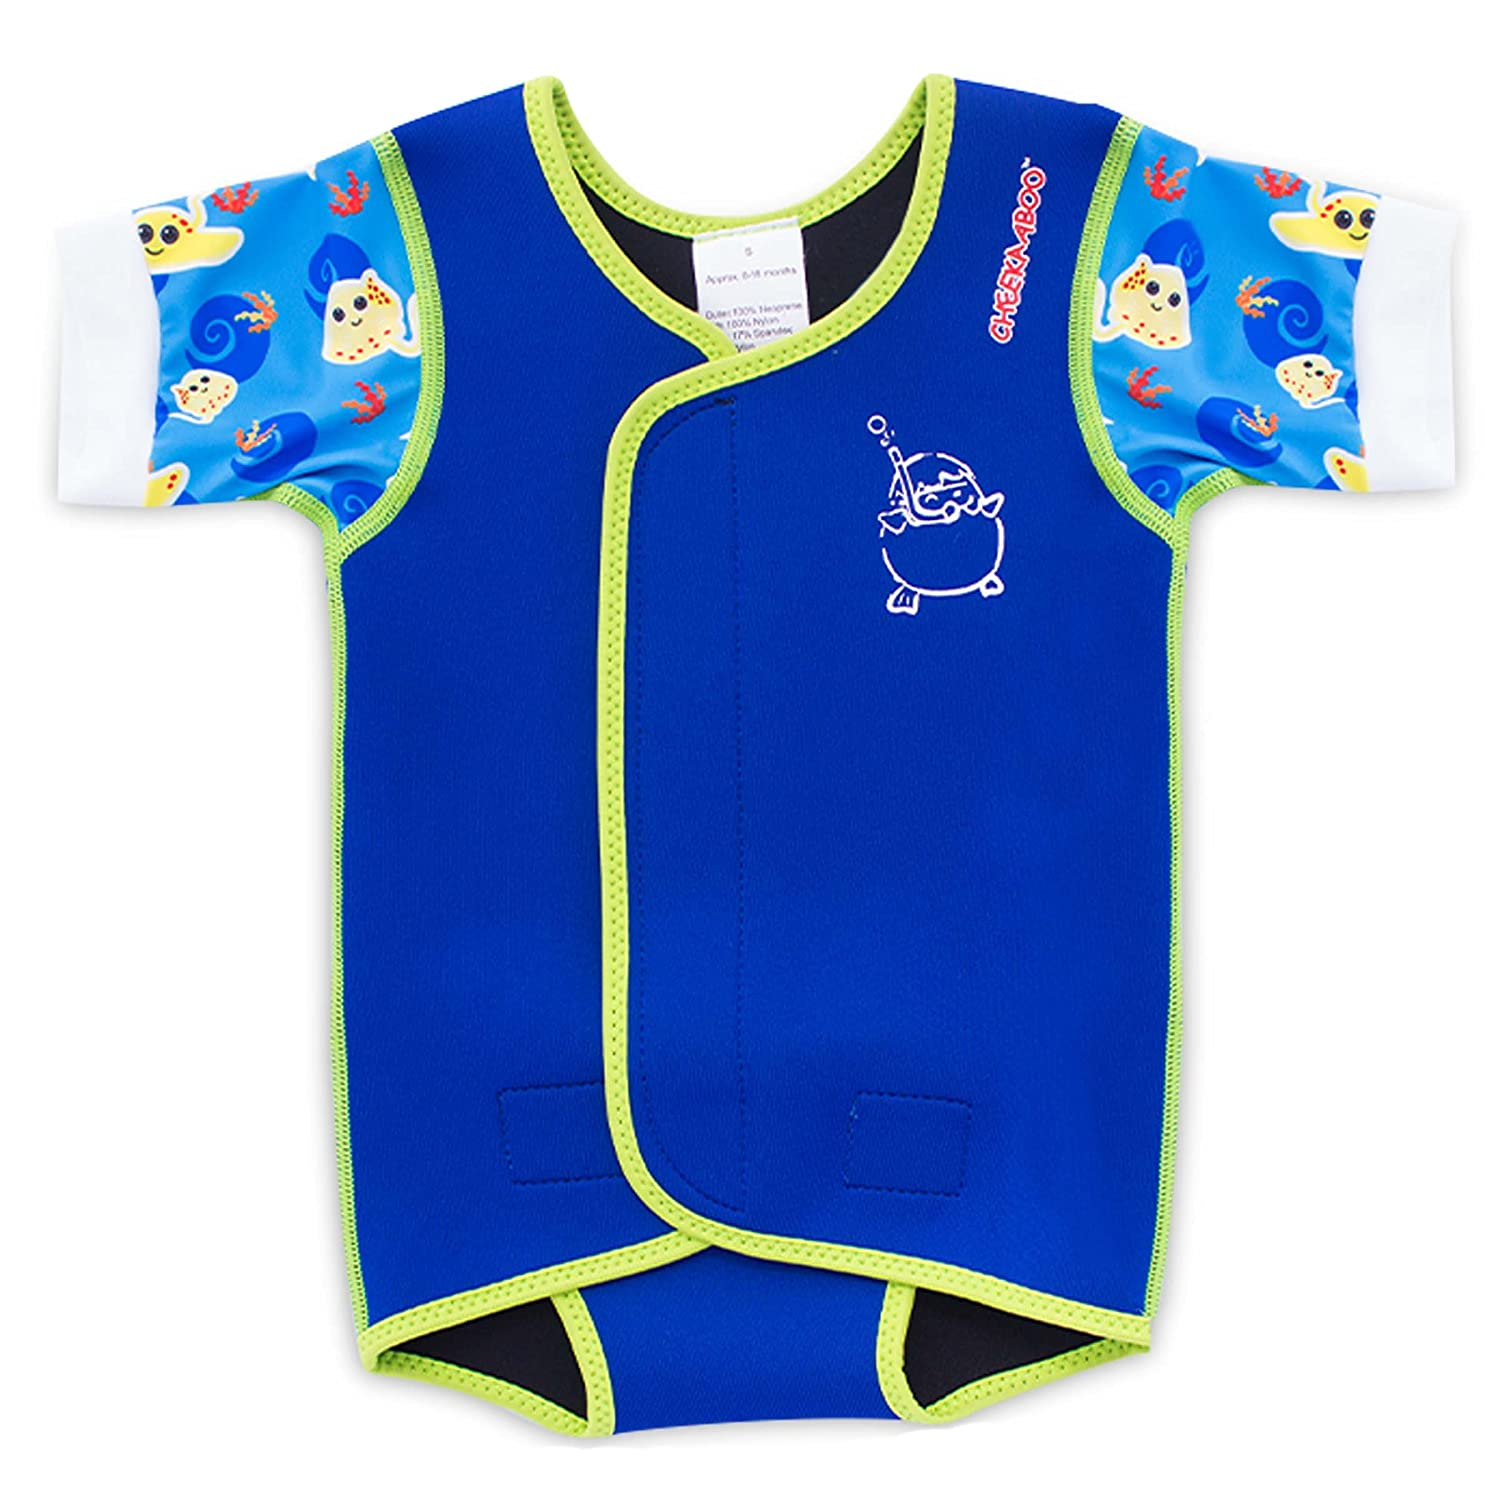 Cheekaaboo Baby Thermal Waterbabes Wrap Swimsuit [Under The Sea Collection] WBW-LB/M.F-6 -18 Months-$P